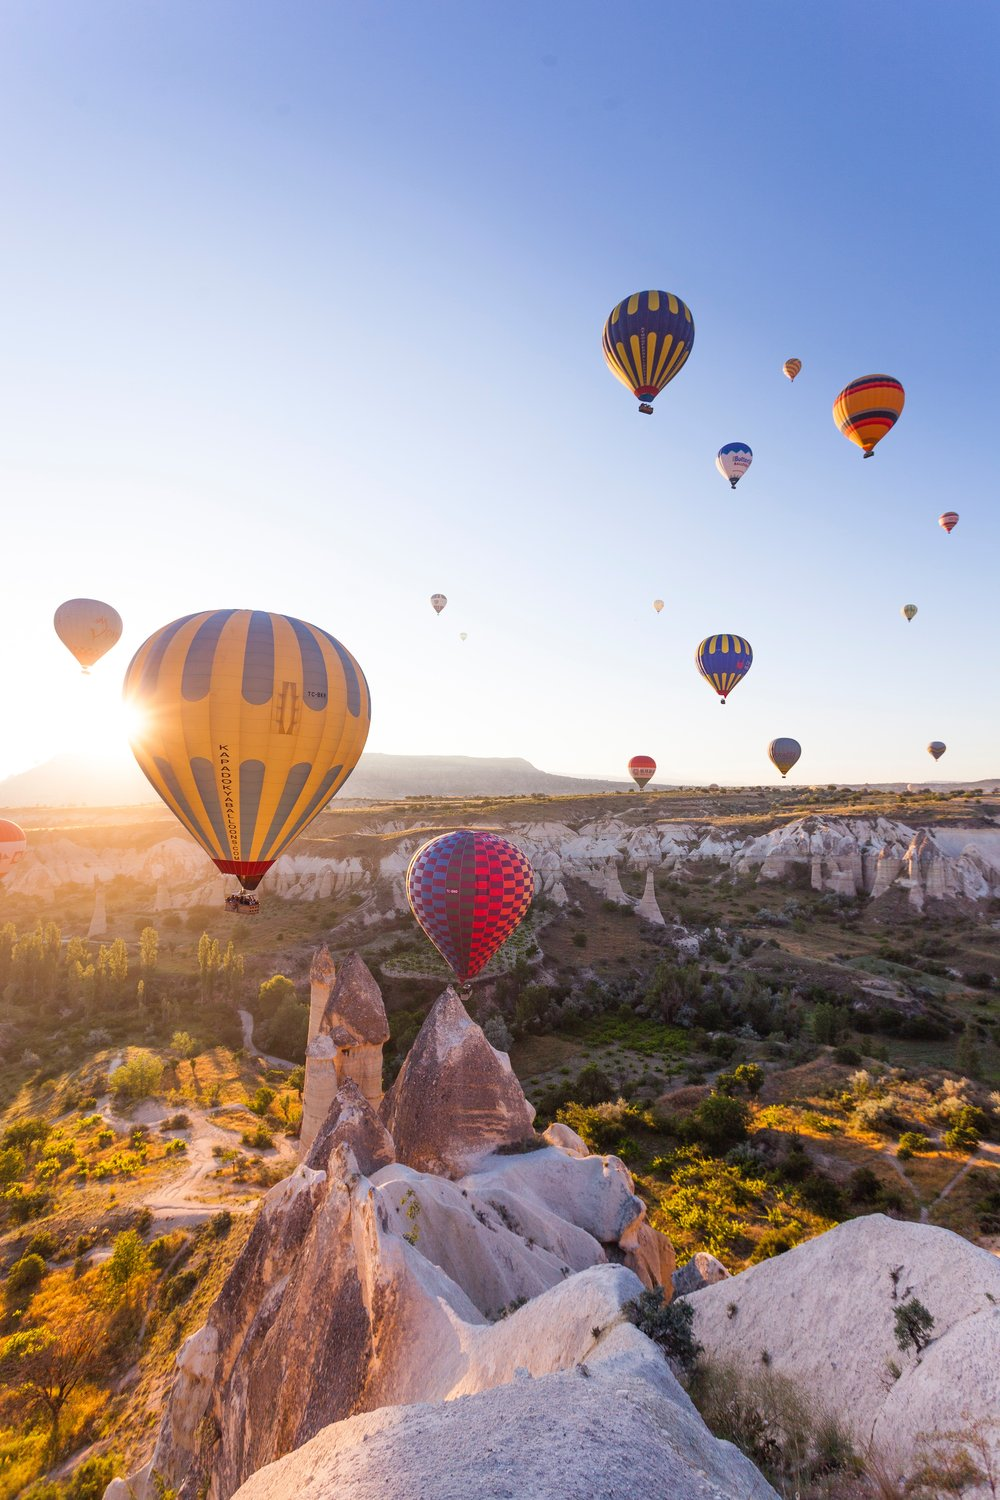 Spectacular view of colorful hot air balloons flying high in Cappadocia, Turkey. Cappadocia is a famous vacation destination for its panoramic desert views and cave homes.